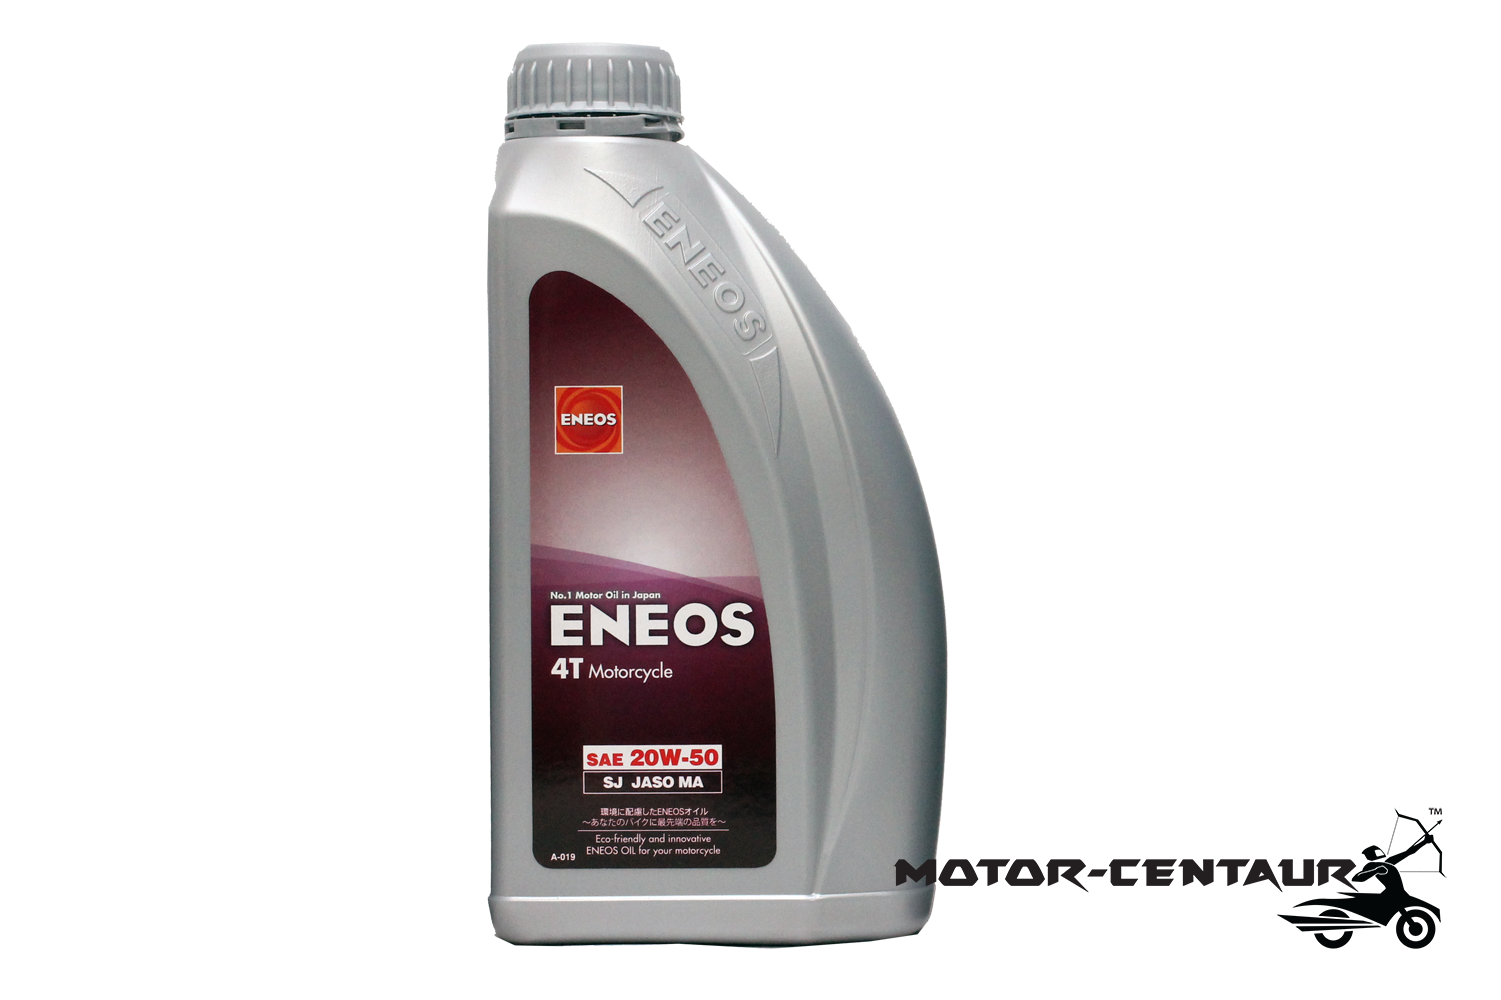 ENEOS MINERAL BASED 4T ENGINE LUBRICANT SAE20W50 MA 1L